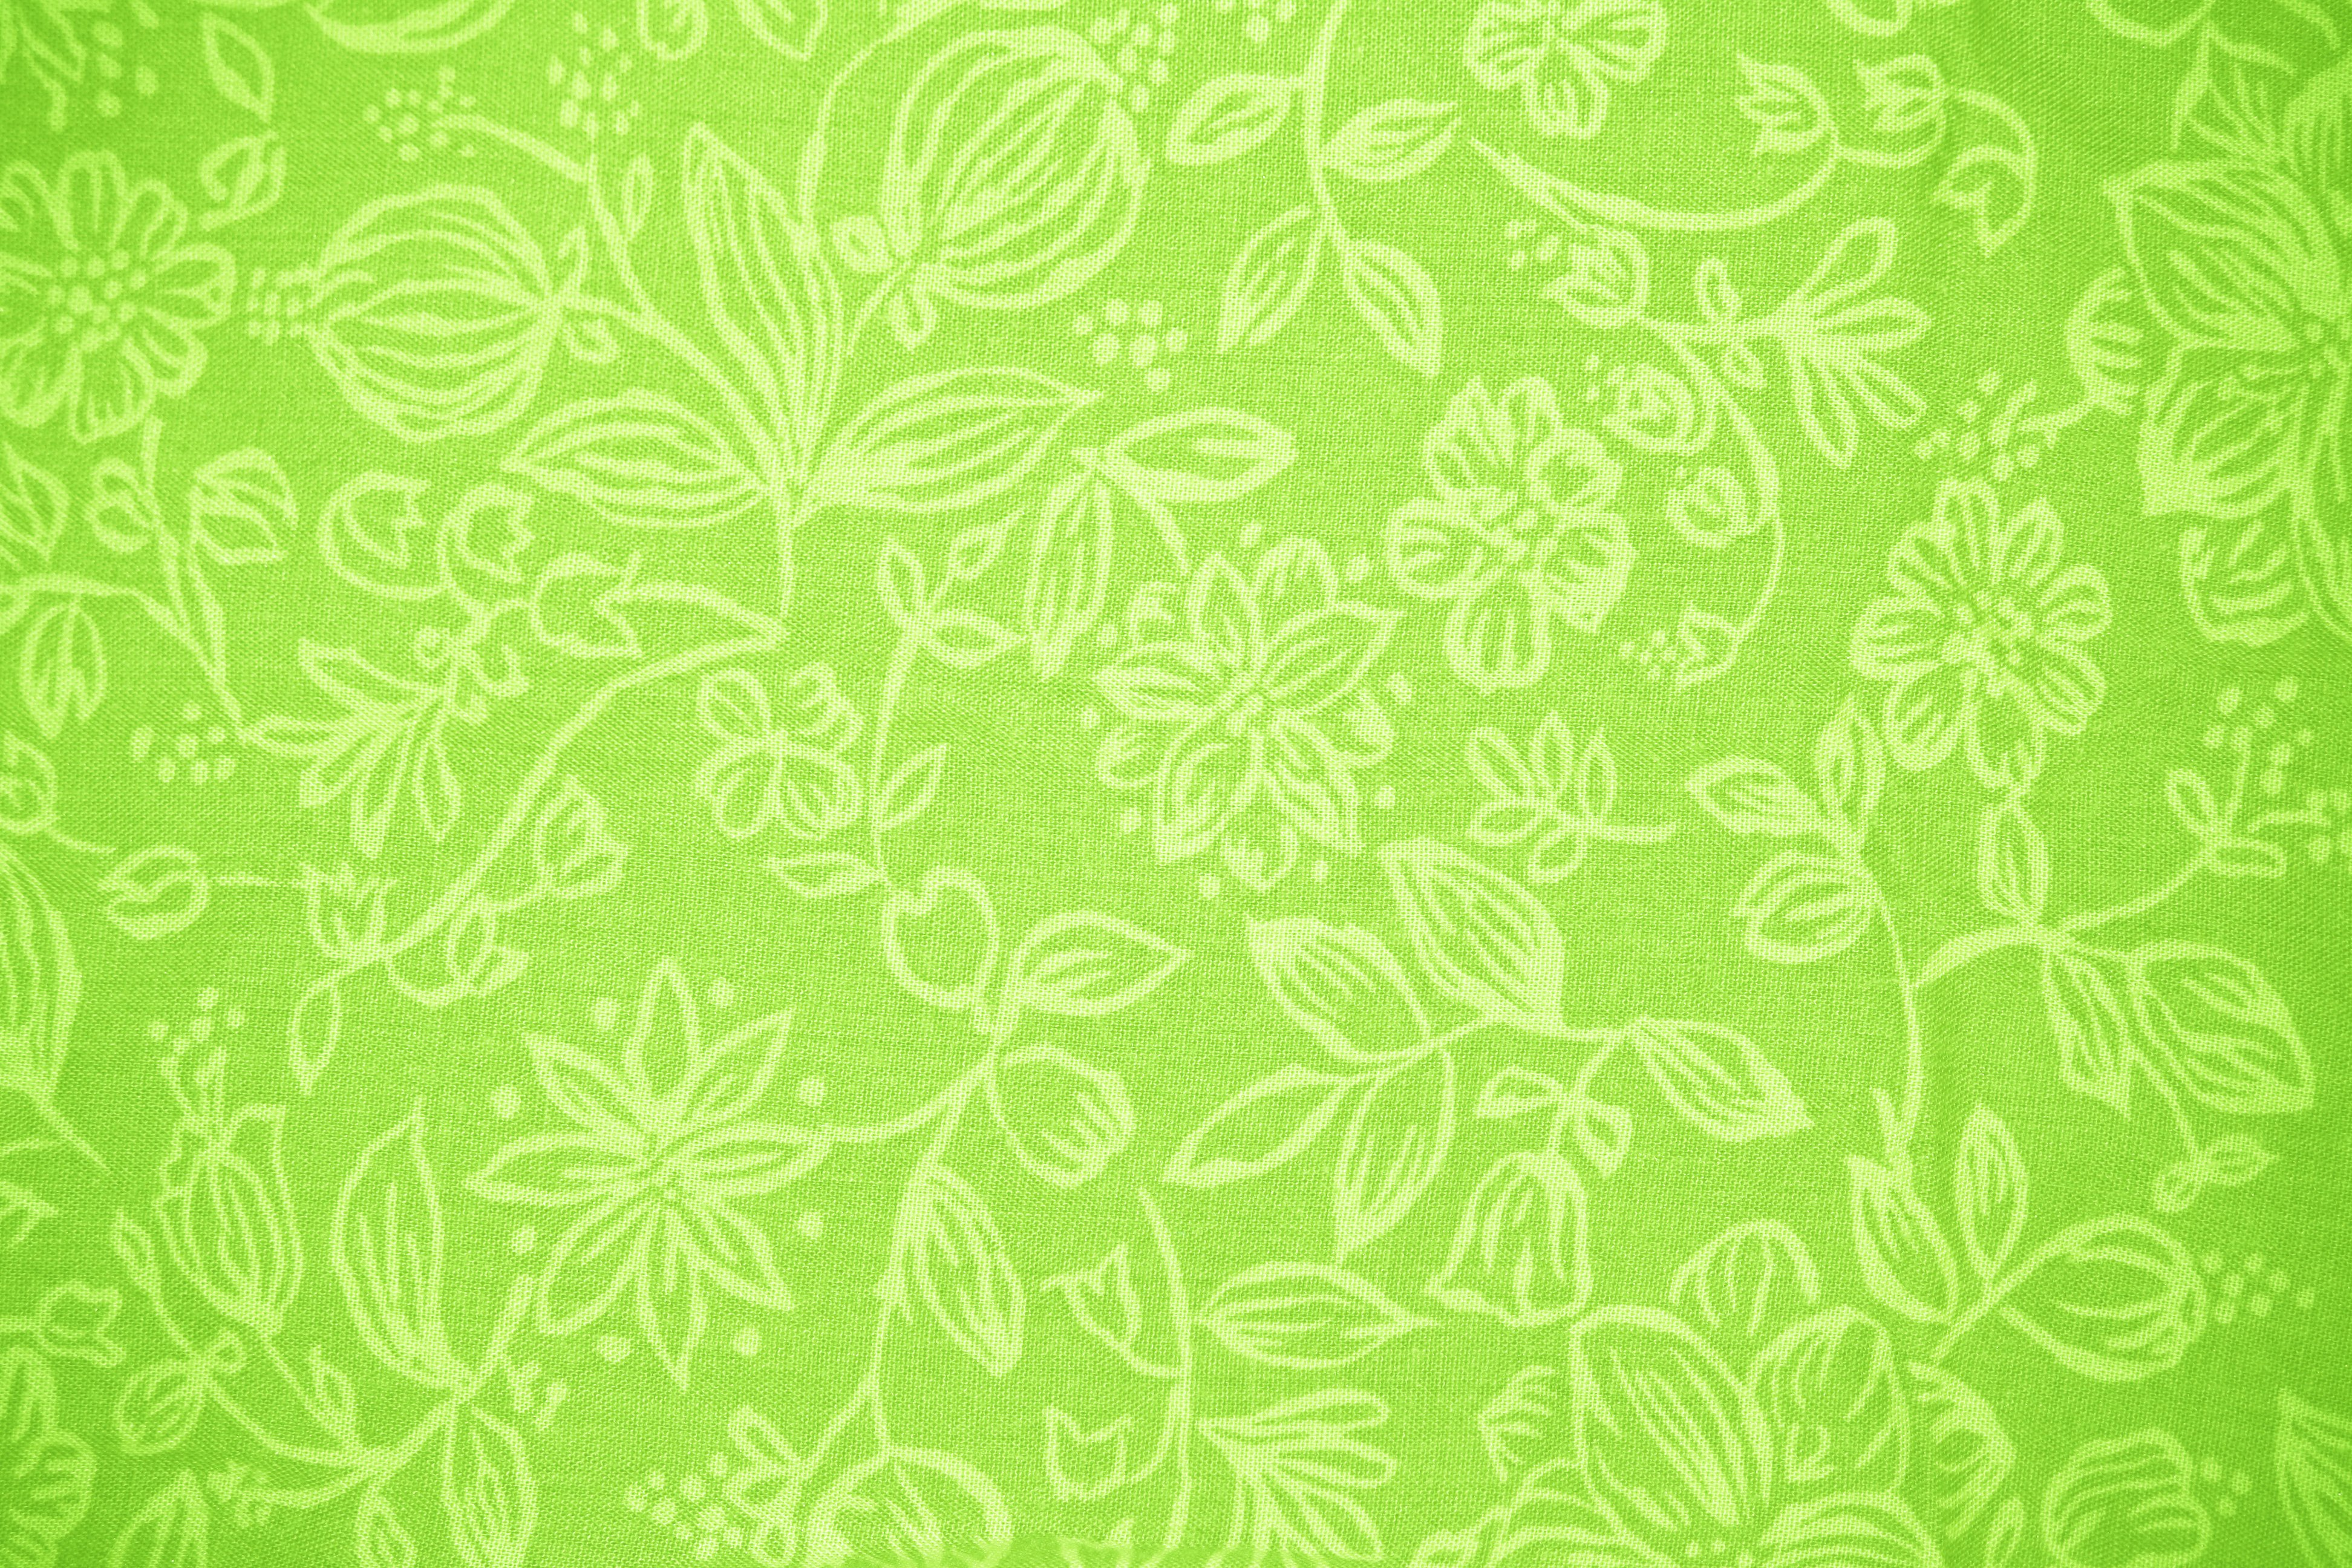 Lime Green Fabric With Floral Pattern Texture Picture Free